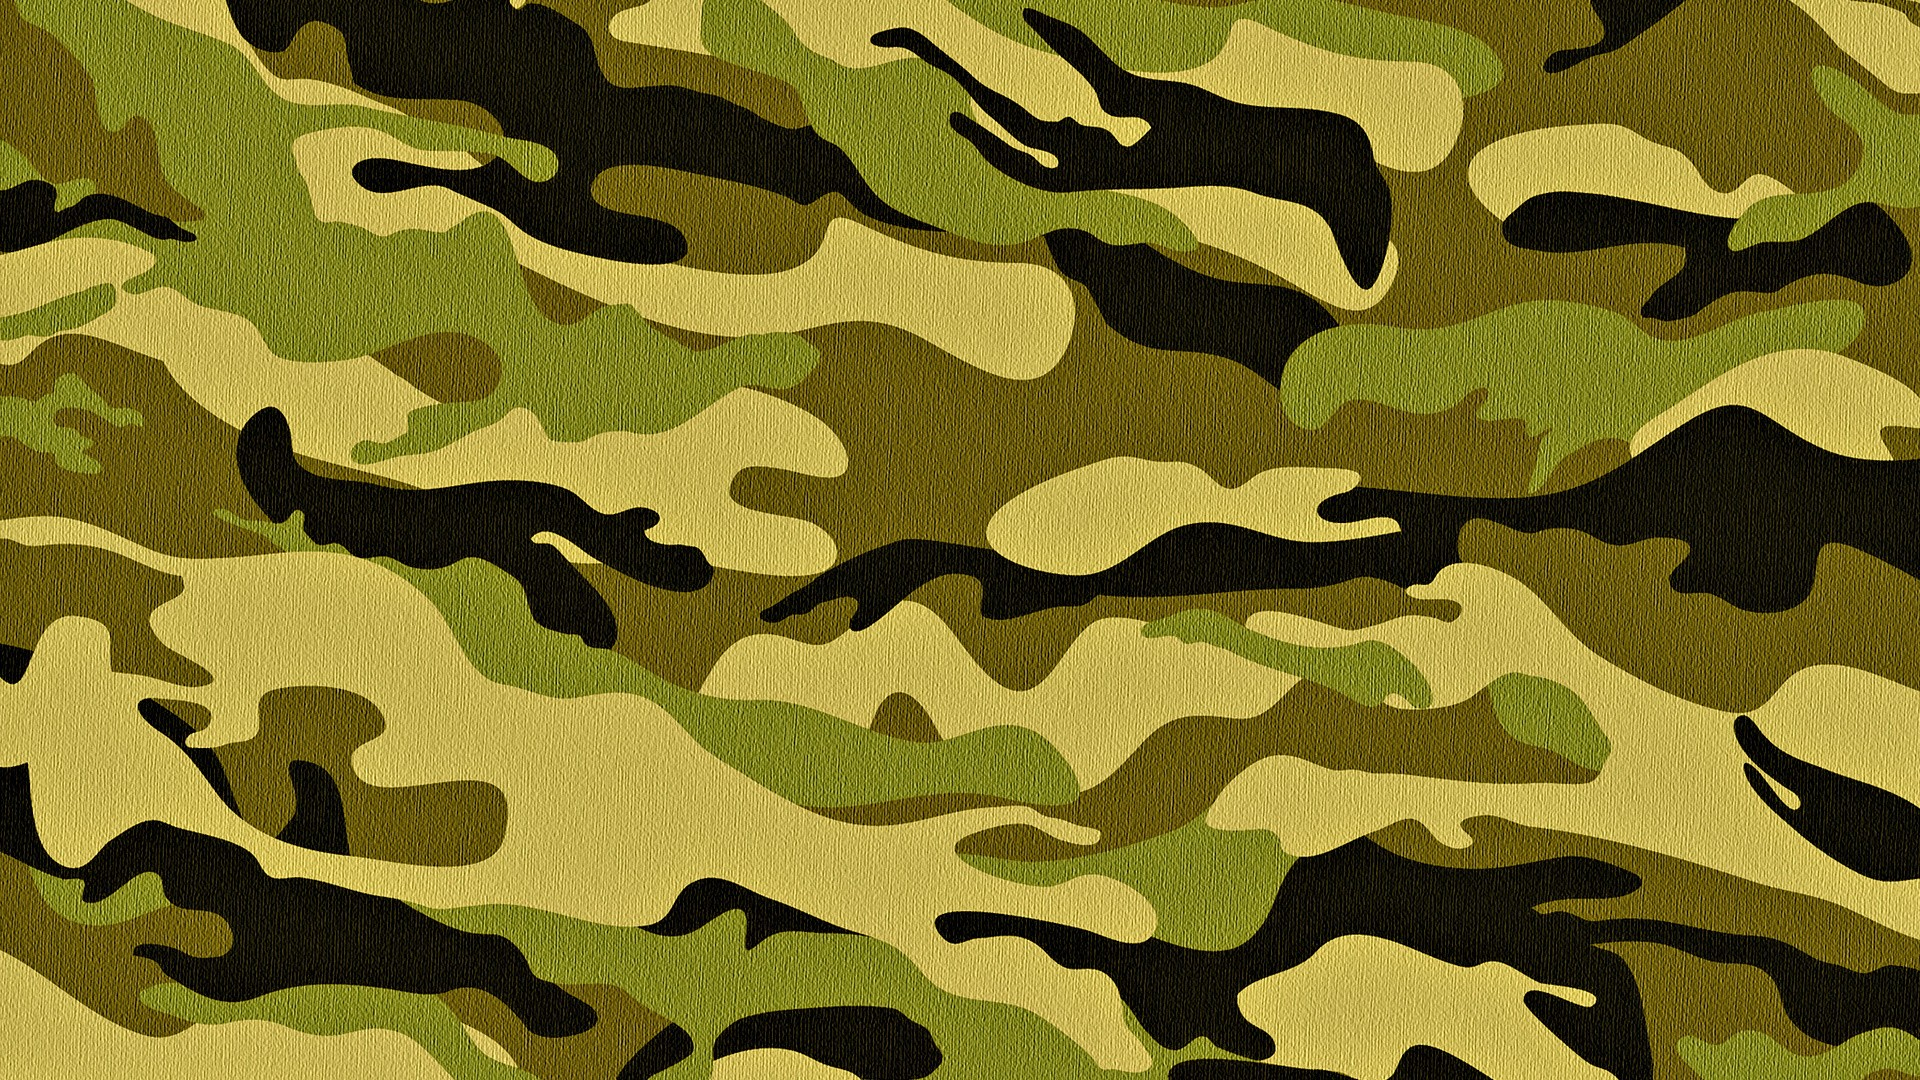 the army wallpapers category of hd wallpapers army camouflage 1920x1080